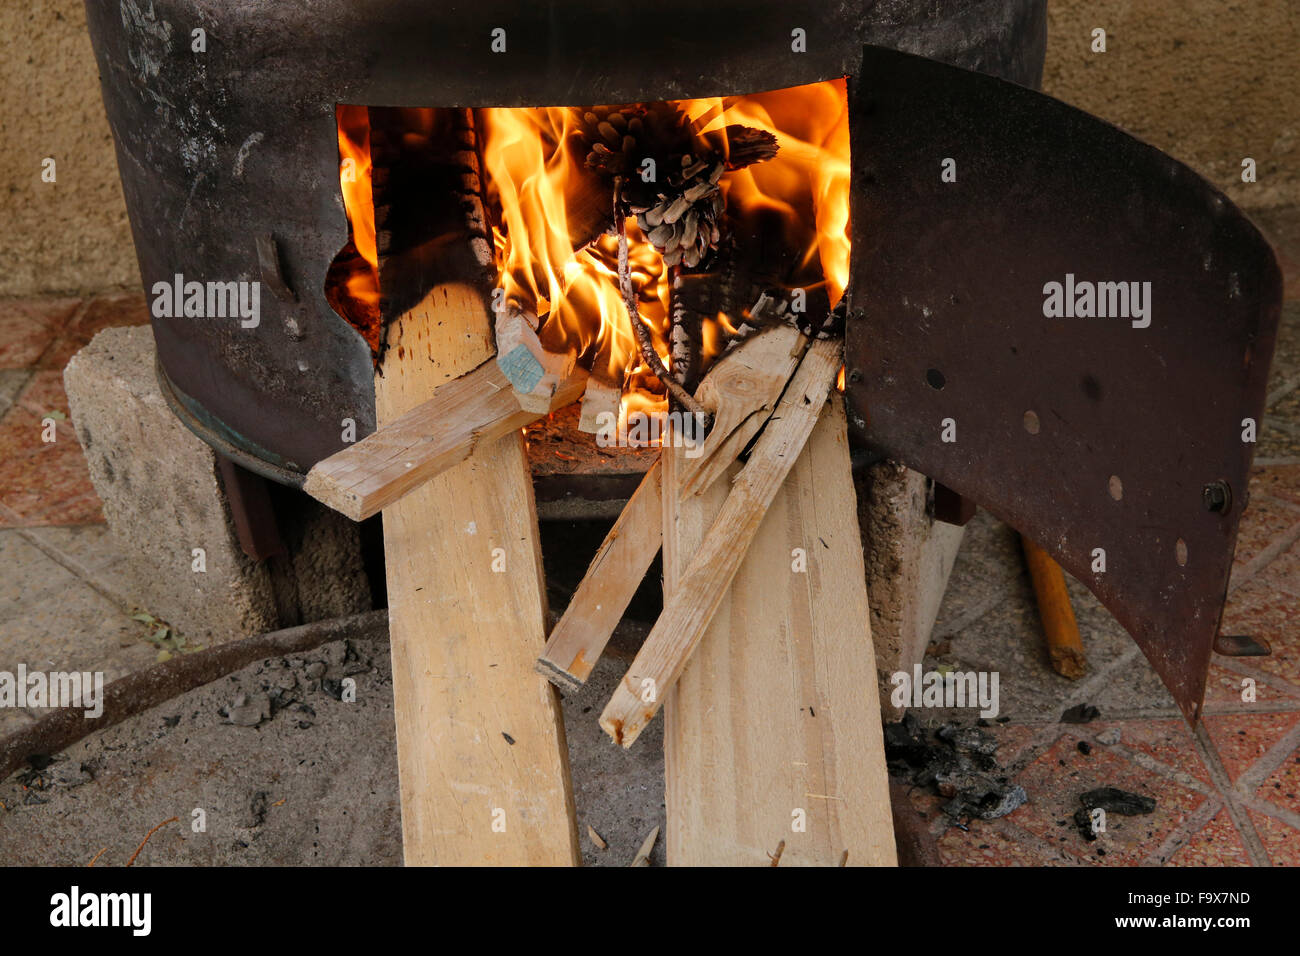 Cooking oven. - Stock Image